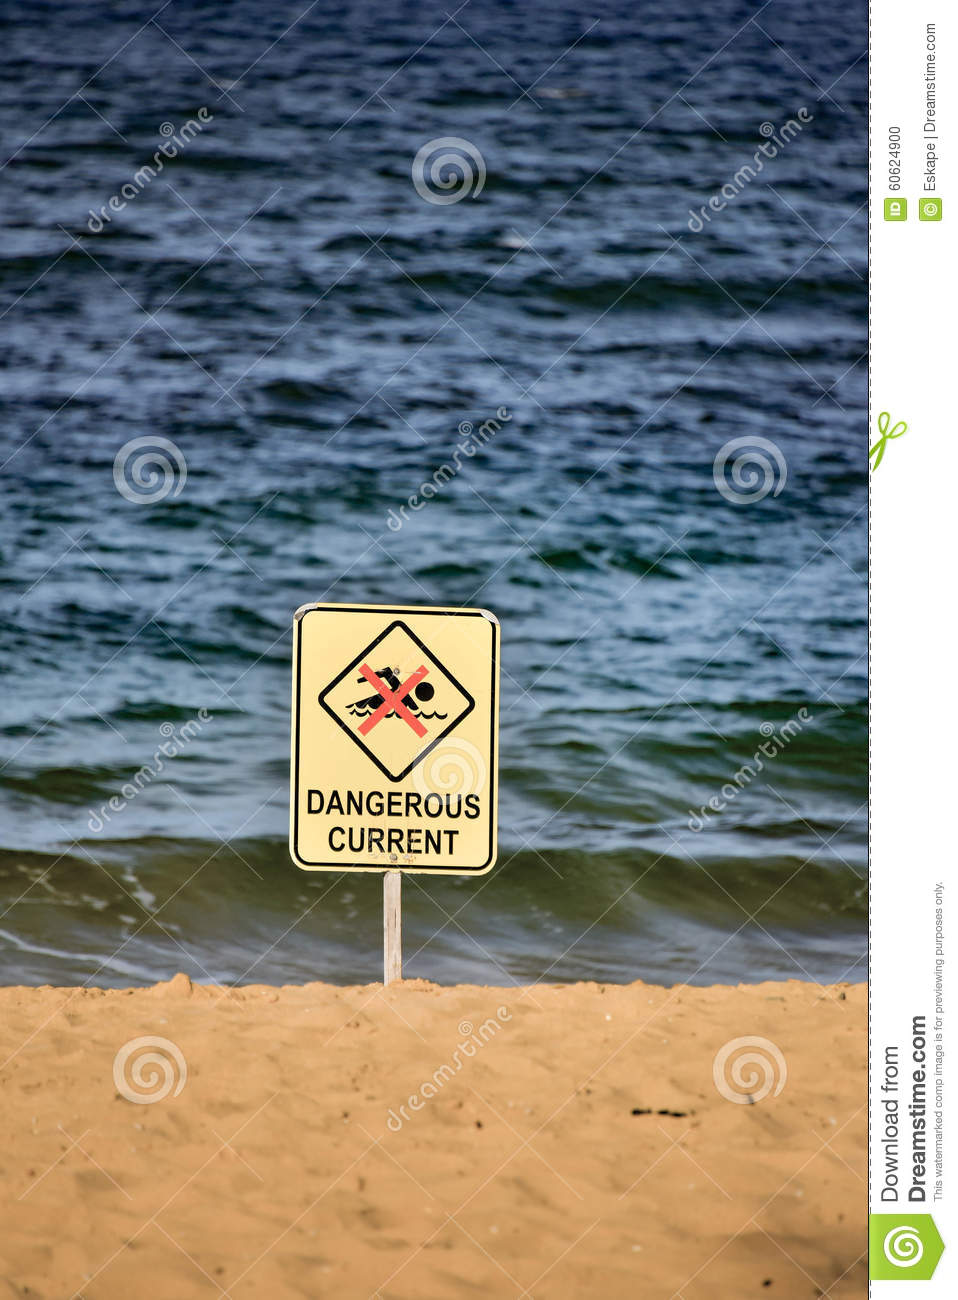 Dangerous Current sign at the beach